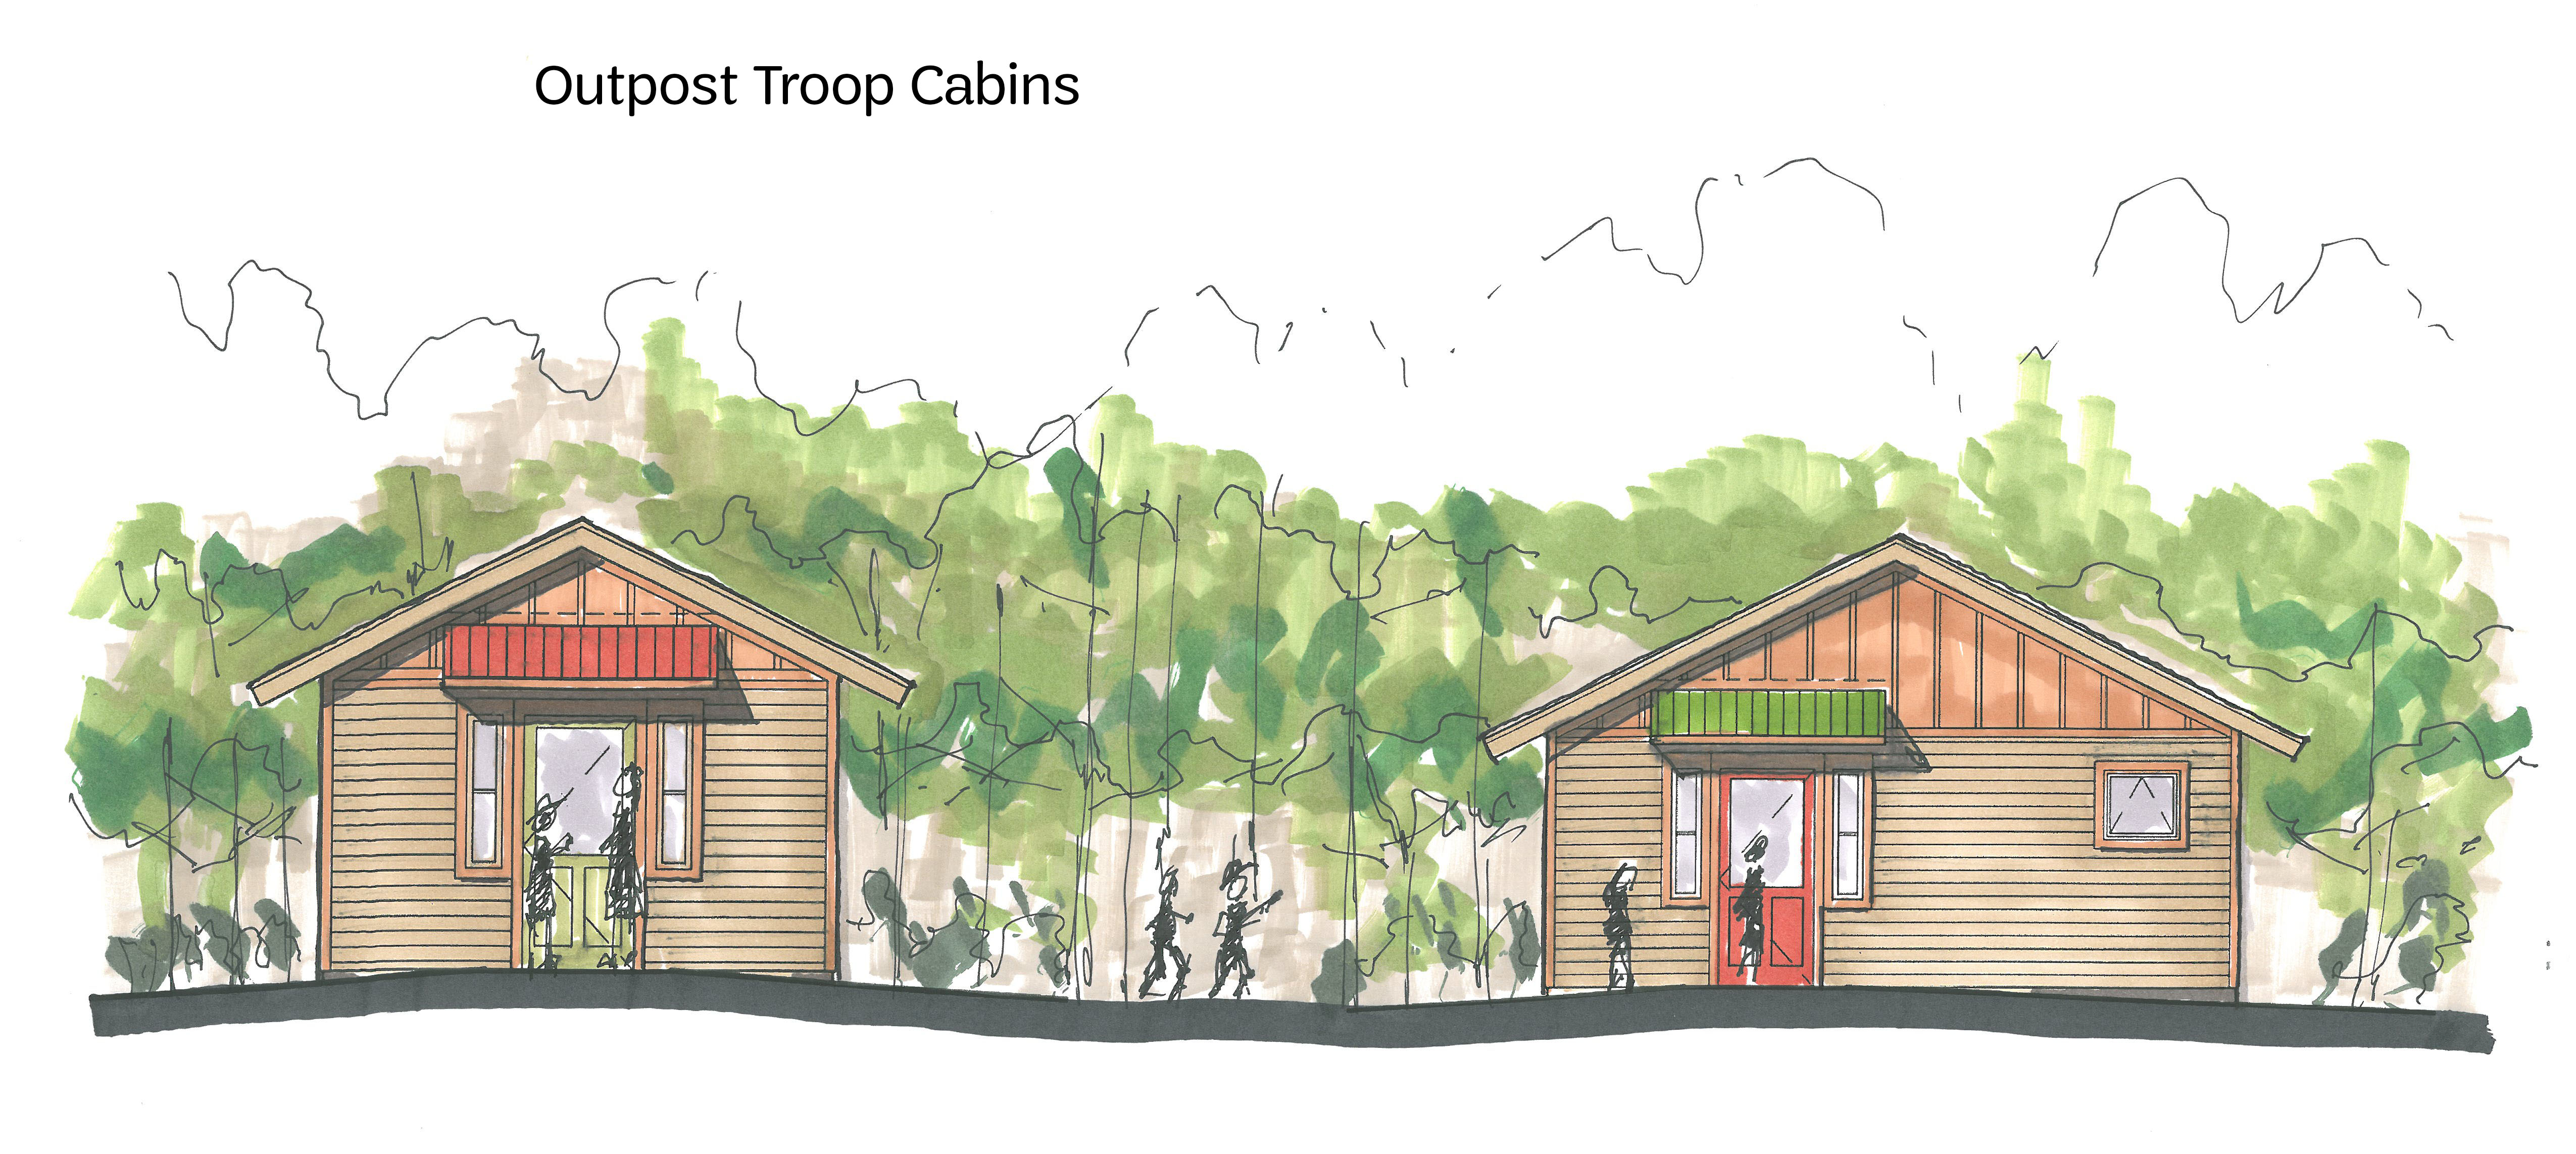 Camp ledgewood girl scouts of north east ohio for Camp joy ohio cabins